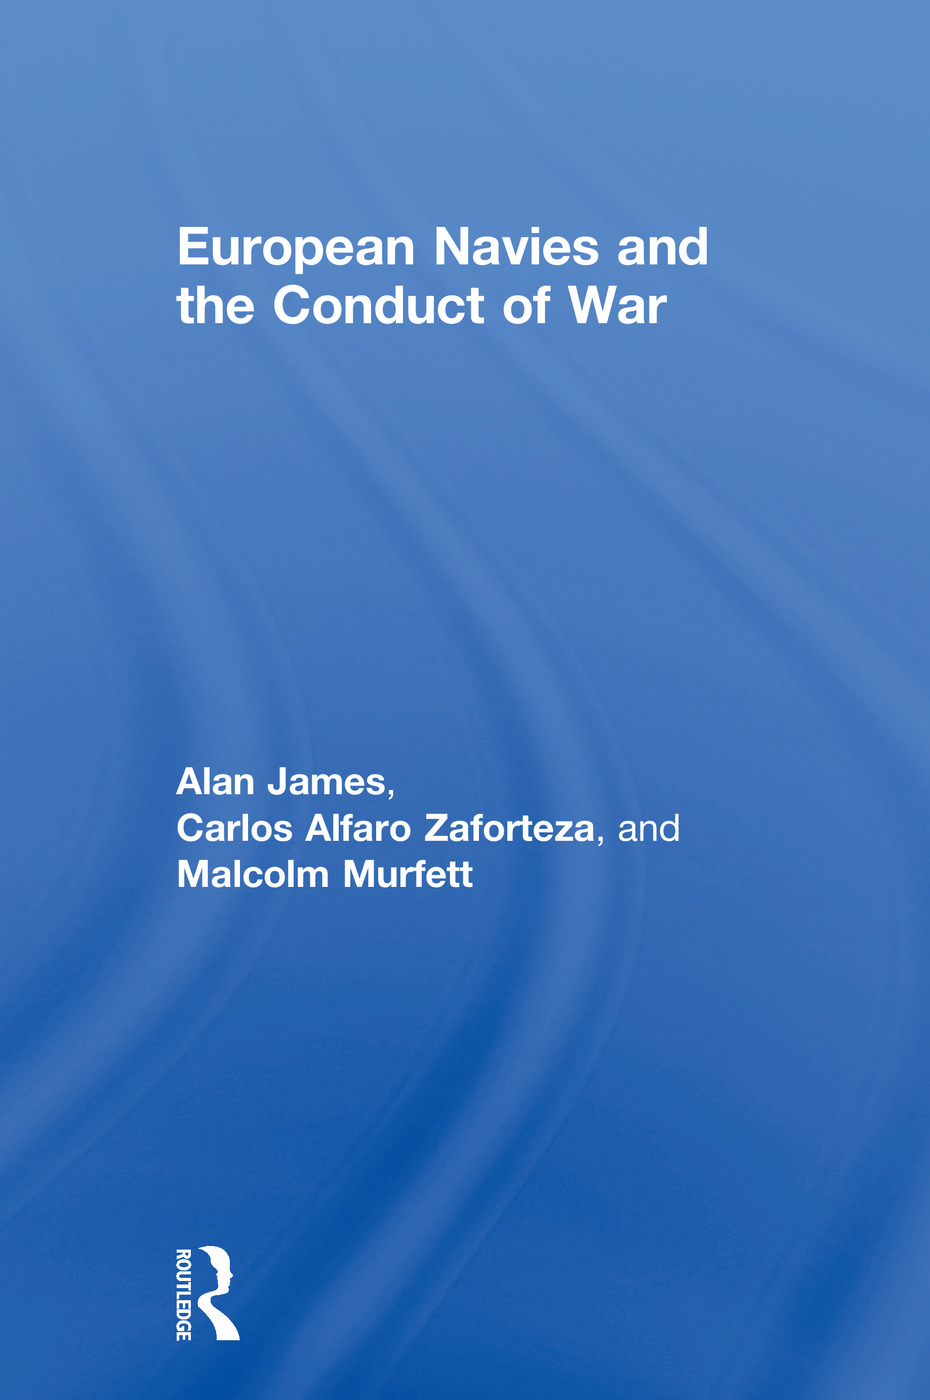 European Navies and the Conduct of War book cover